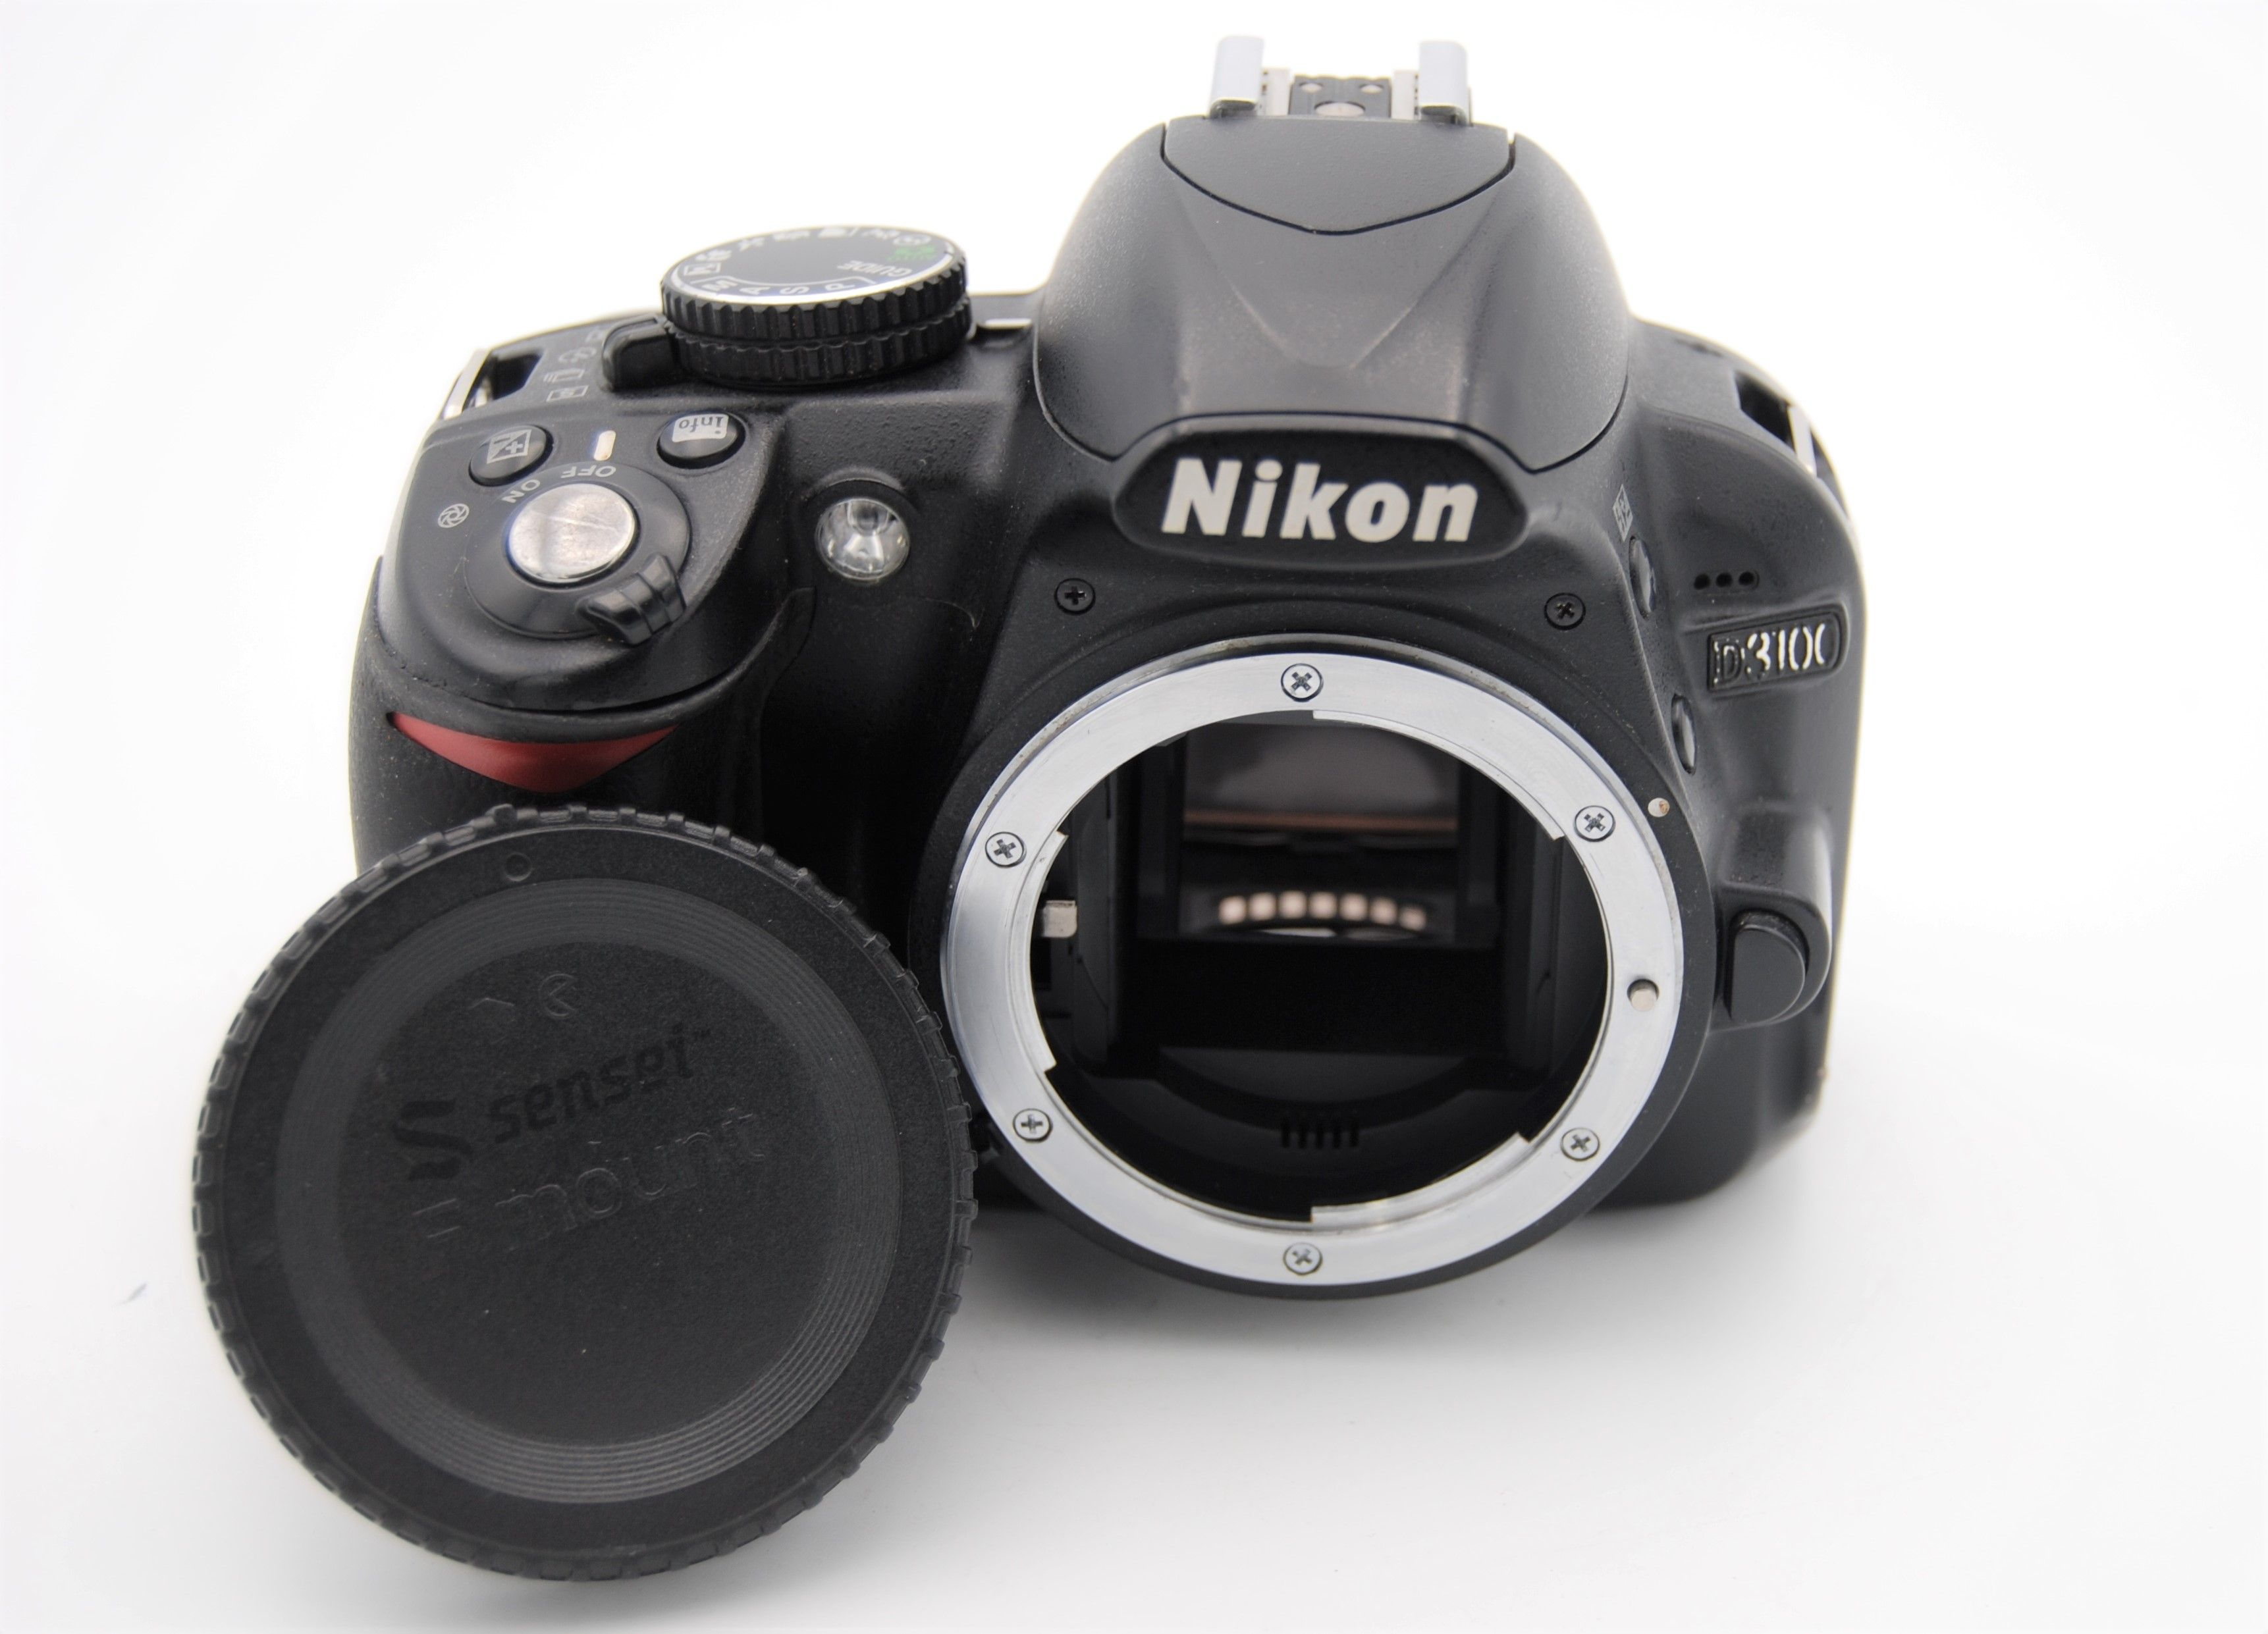 Details about Nikon D3100 14 2 MP 3''Screen DSLR Camera BODY ONLY - SHUTTER  COUNT 3600